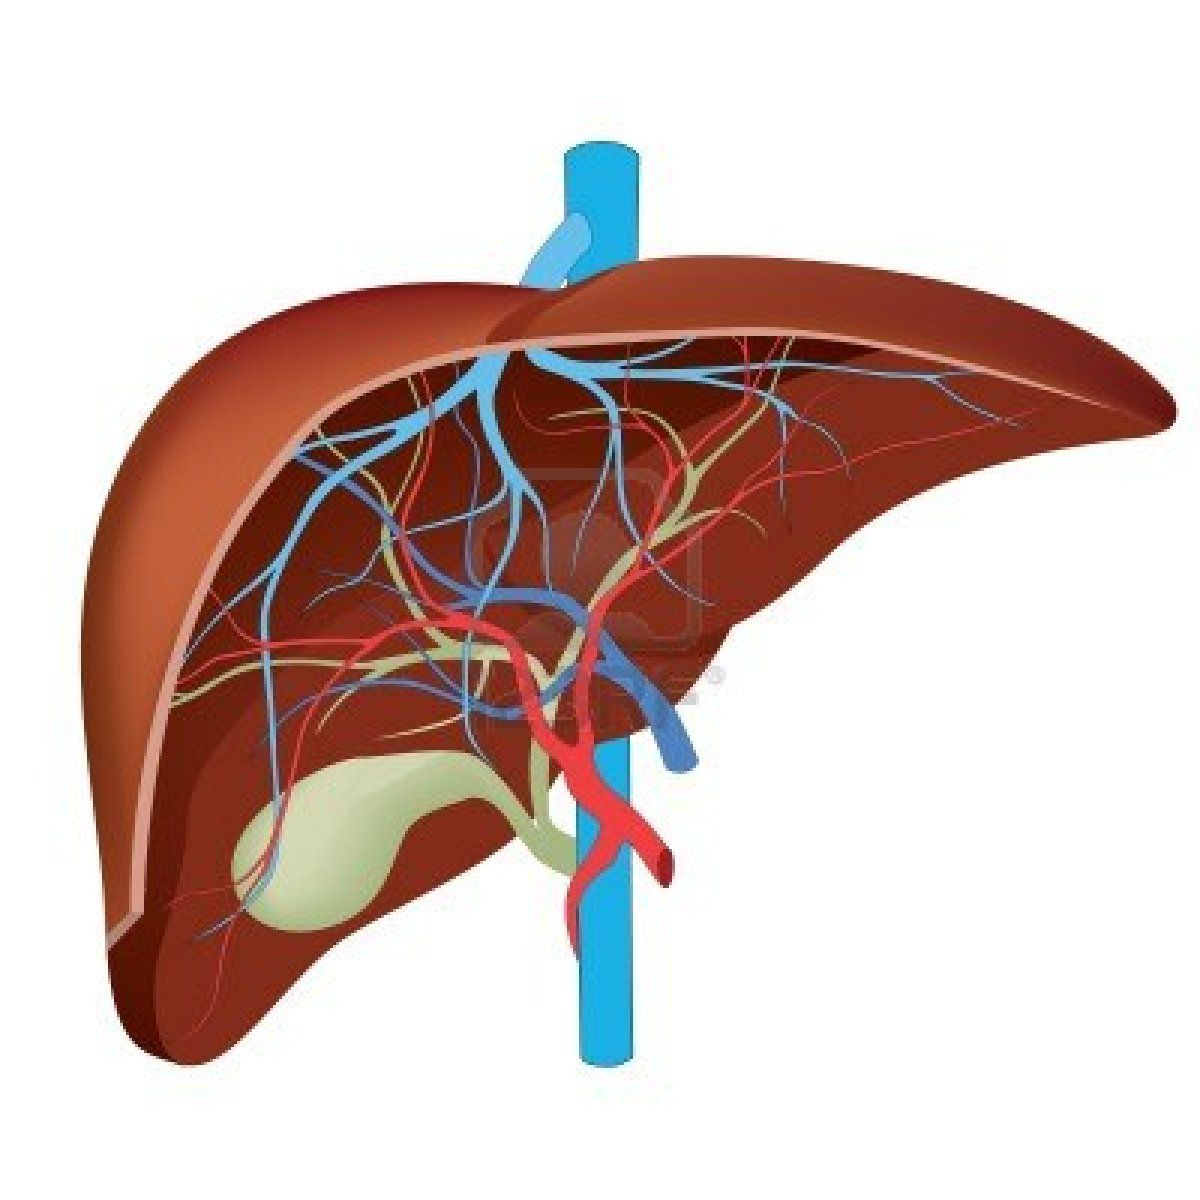 hepatic images | Liver diagram for assignment ~ Human Anatomy ...